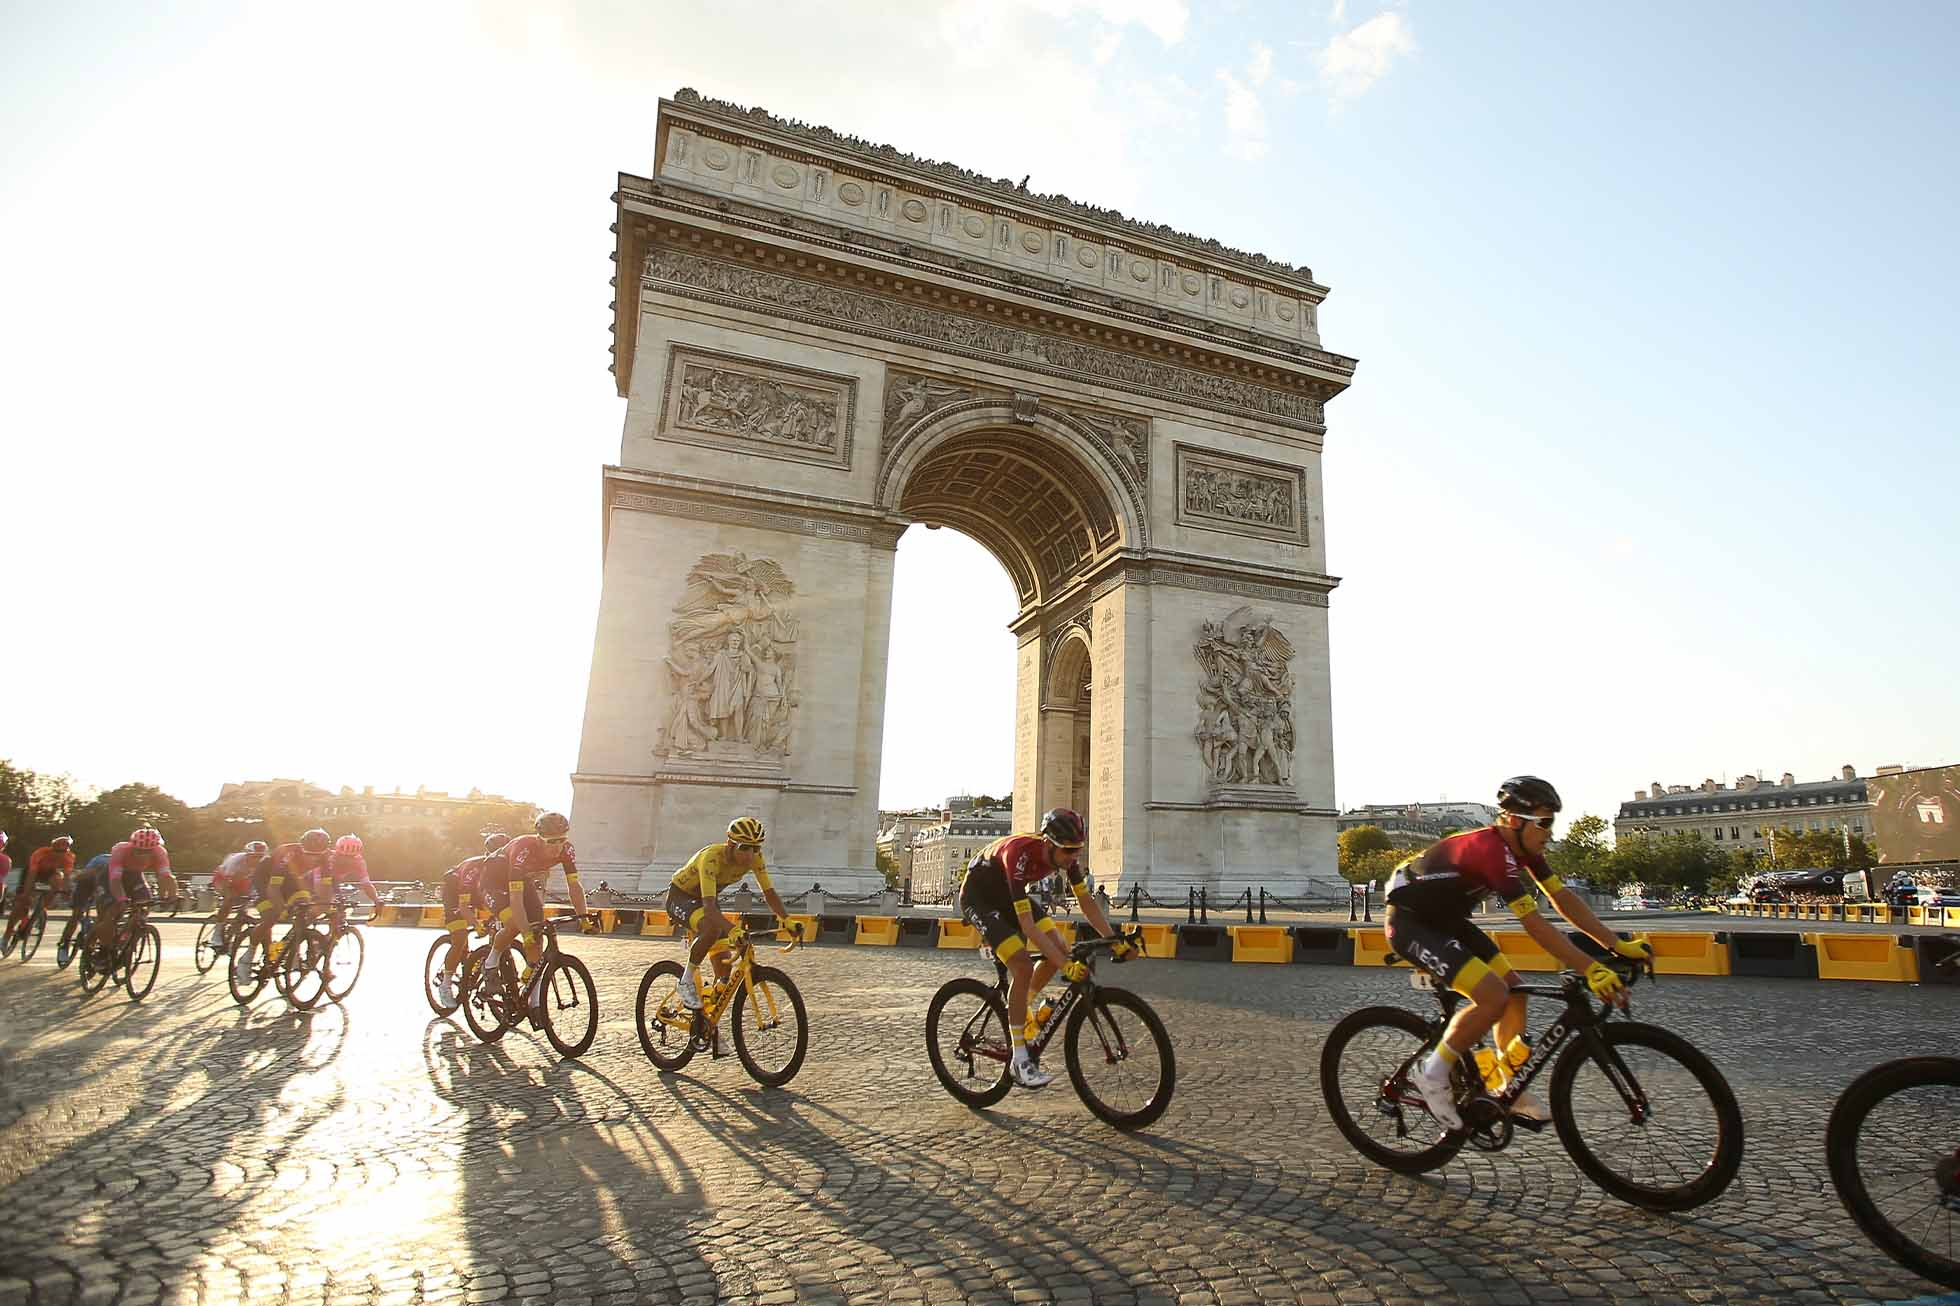 106th Tour de France 2019 - Stage 21 PARIS, FRANCE - JULY 28: Yellow jersey Egan Bernal Gomez of Colombia and Team Ineos passes with the pack in front of Arch of Triumph (Arc de Triomphe) at the top of Avenue des Champs Elysees during stage 21 of the 106th Tour de France 2019, the last stage from Rambouillet to Paris - Champs Elysees (128km) on July 28, 2019 in Paris, France. (Photo by Jean Catuffe/Getty Images)